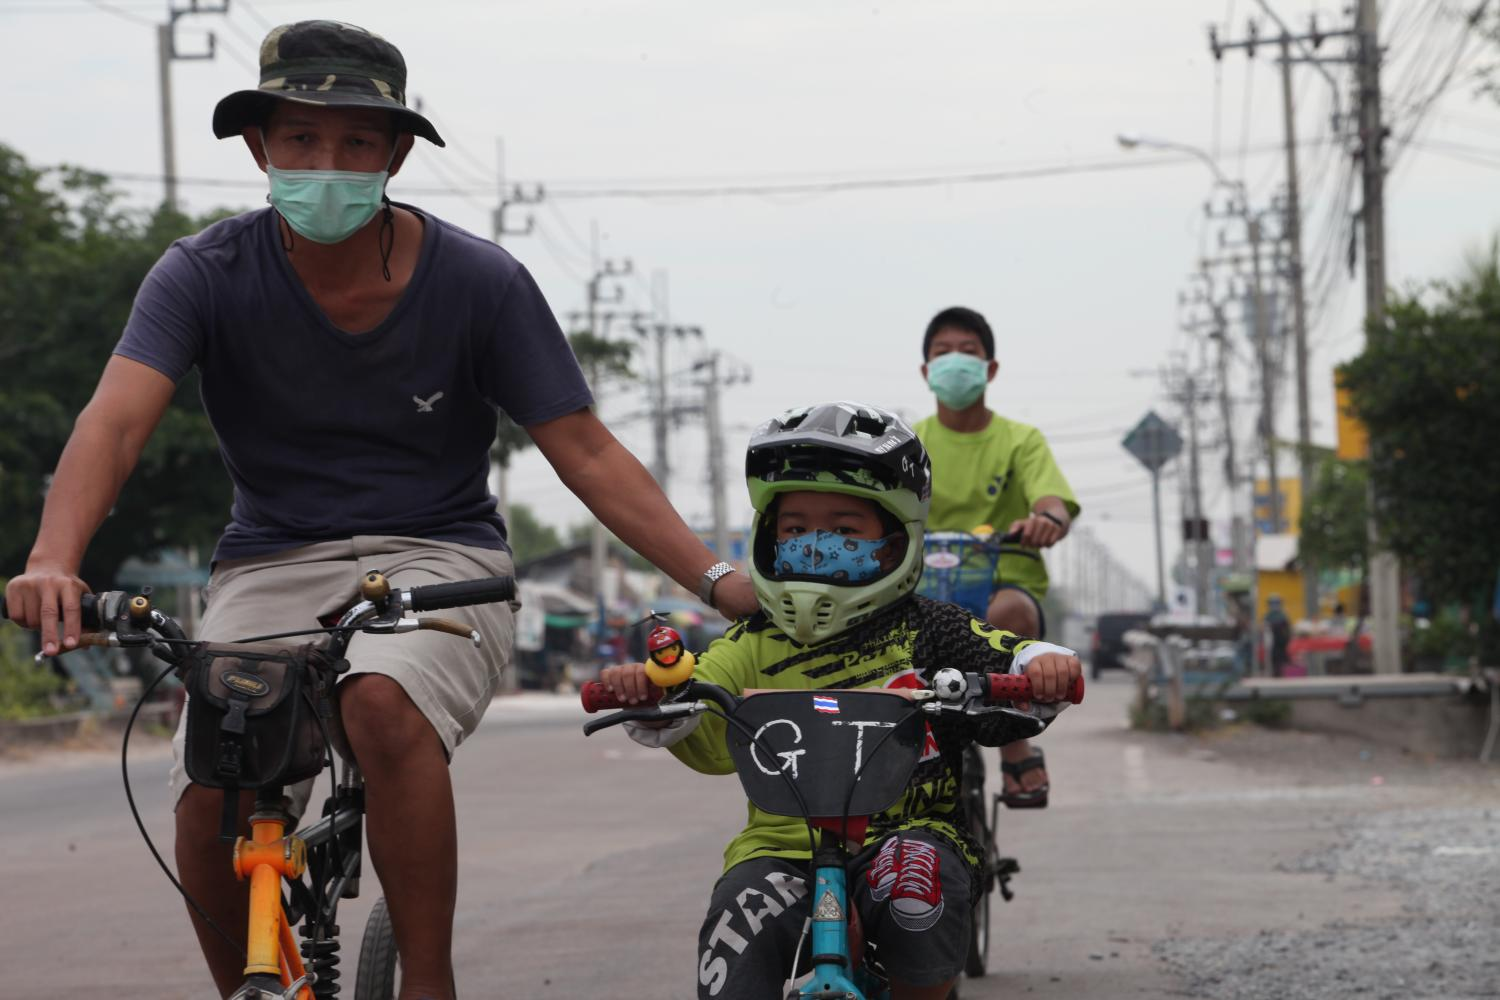 A man takes his son cycling in Bangkok's Bang Khunthian district. People are now wearing masks not only to protect themselves from Covid-19, but also fine dust pollution, which has spiked in parts of Bangkok. (Photo by Apichart Jinakul)